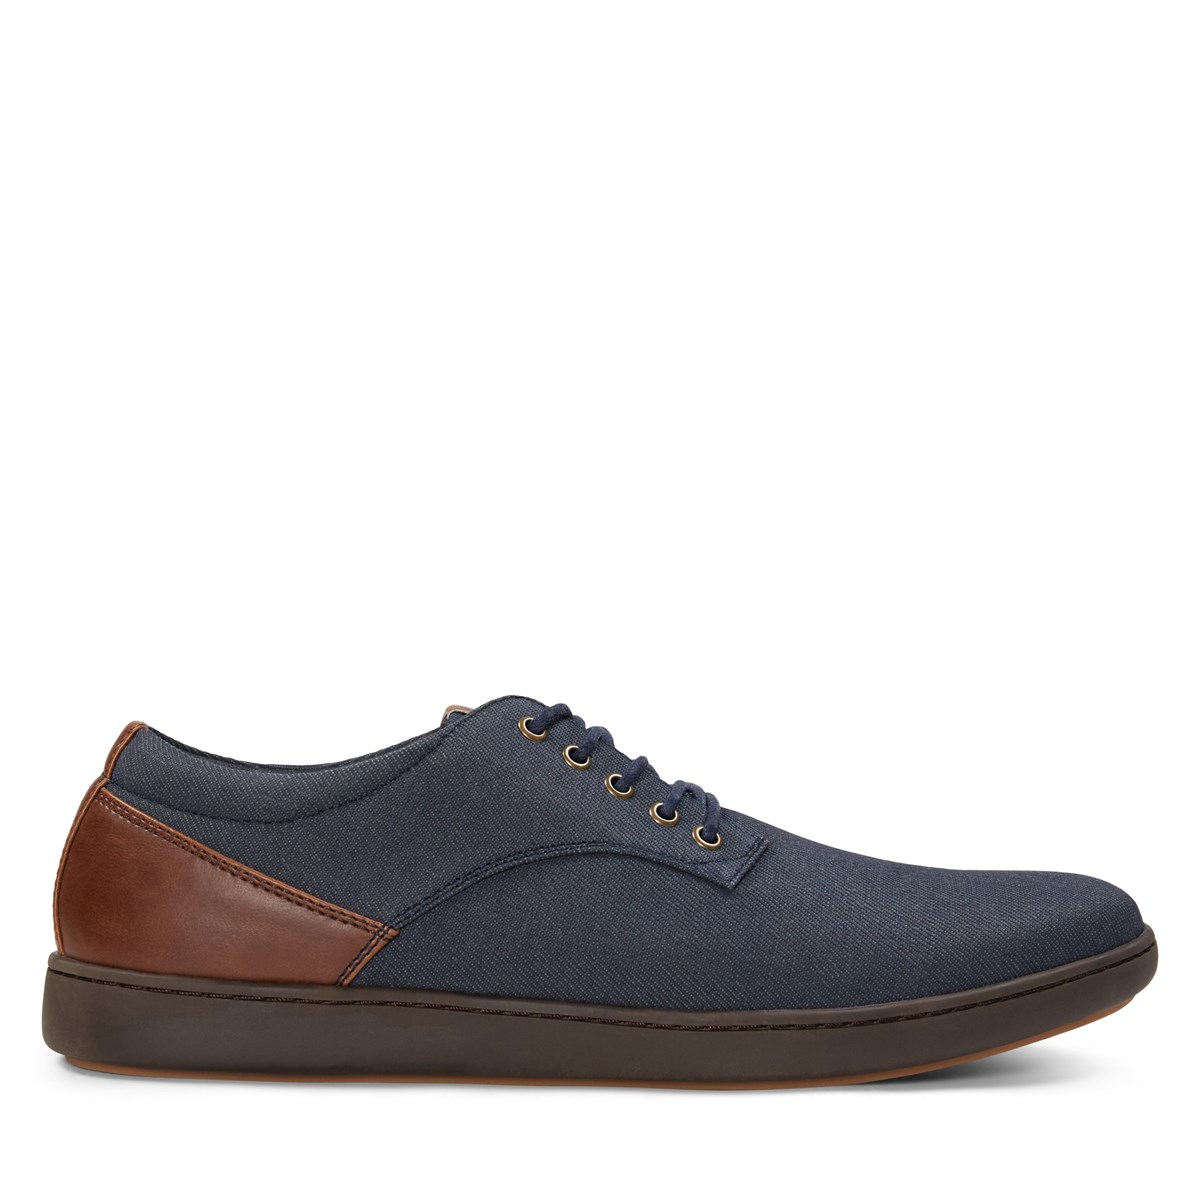 Men's Luca Shoe in Denim